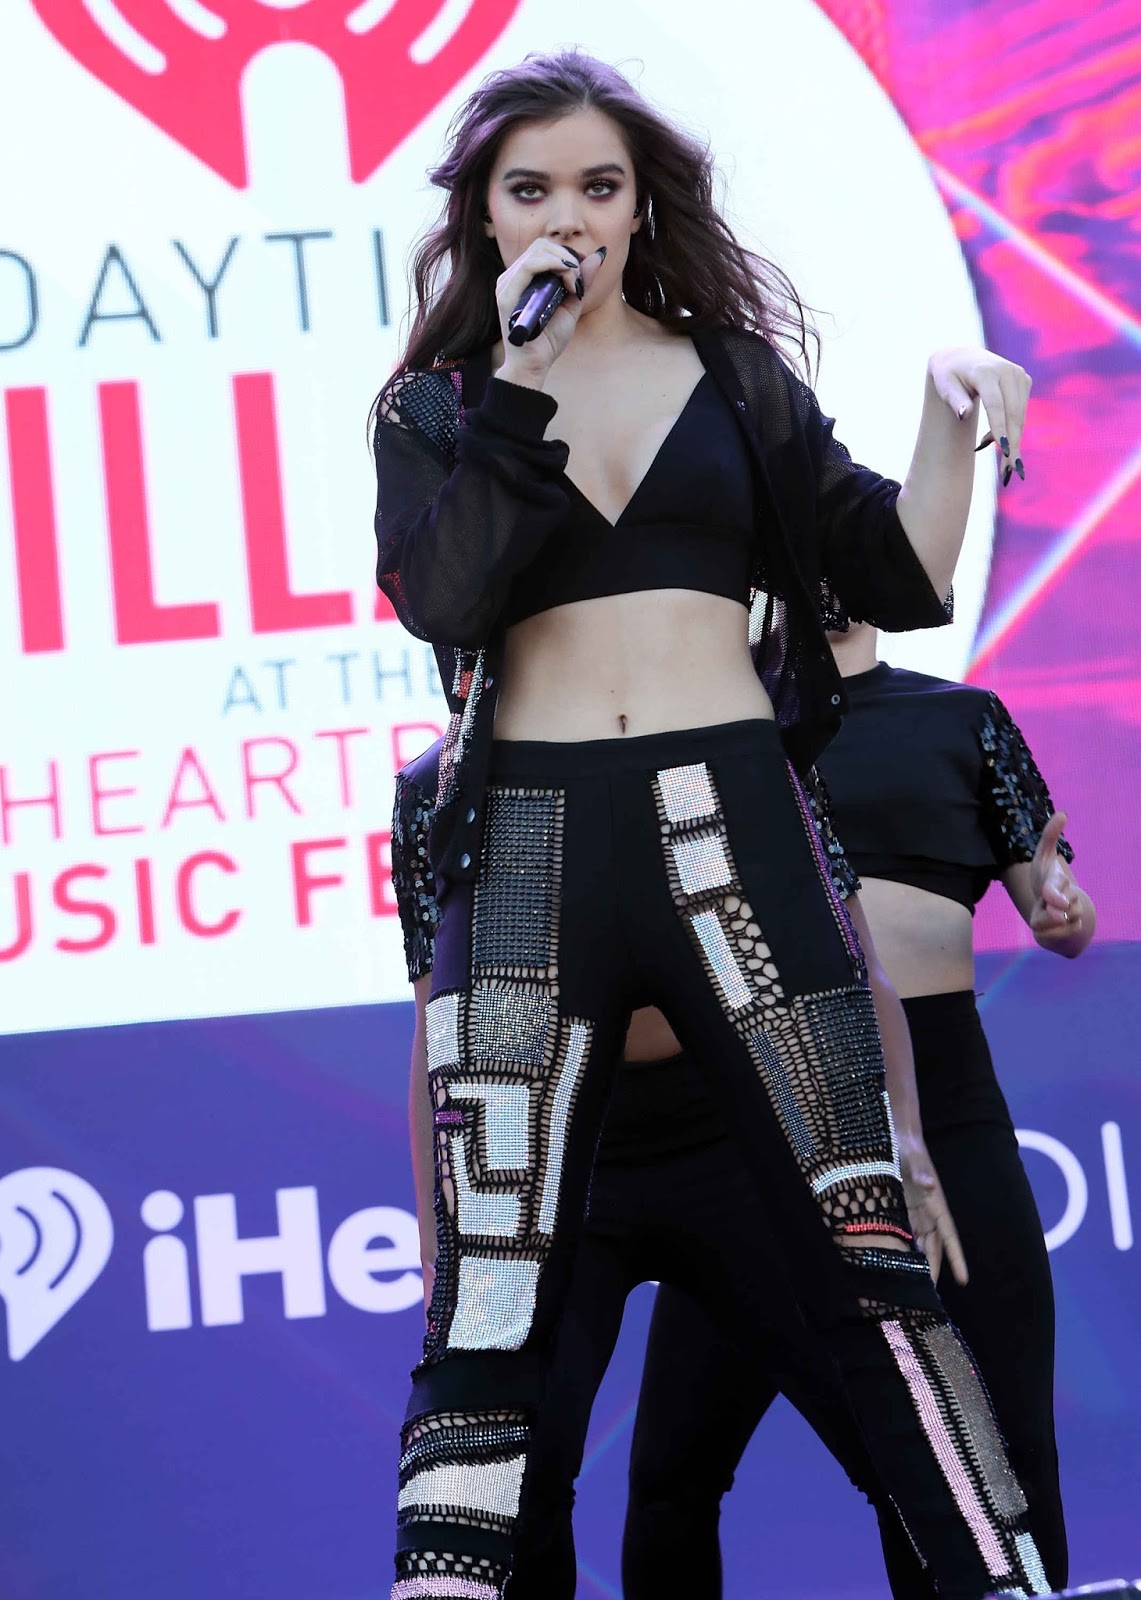 Hailee Steinfeld Performing at iHeartRadio Music Festival 2016